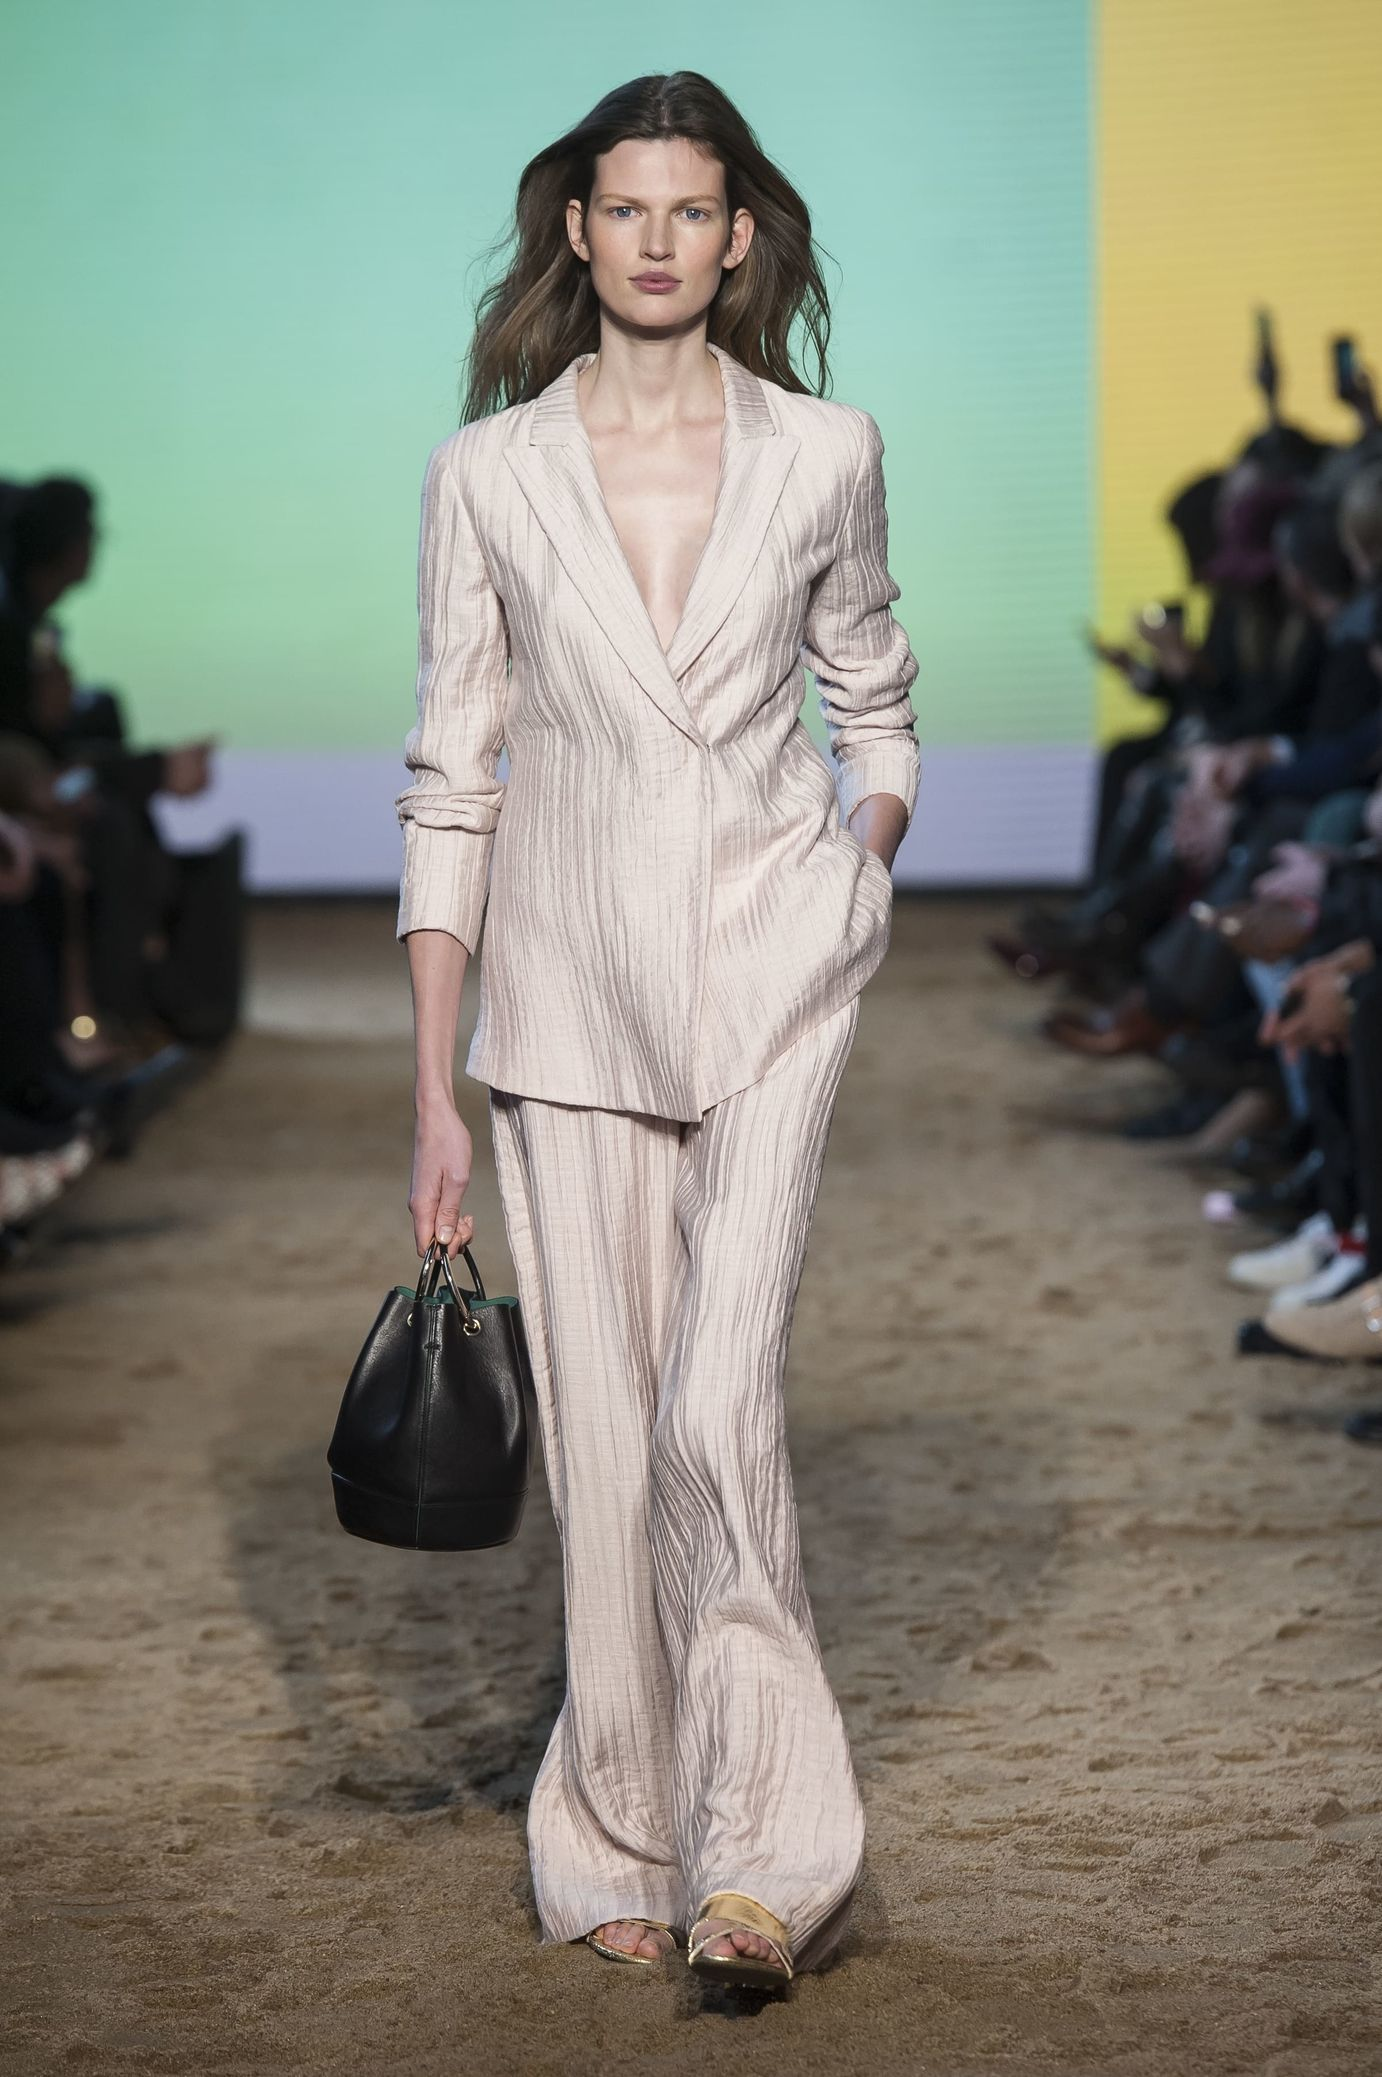 Massimo Dutti  Ready-to-Wear   Fashion Look Book   Pinterest   Fall ... c36db878384